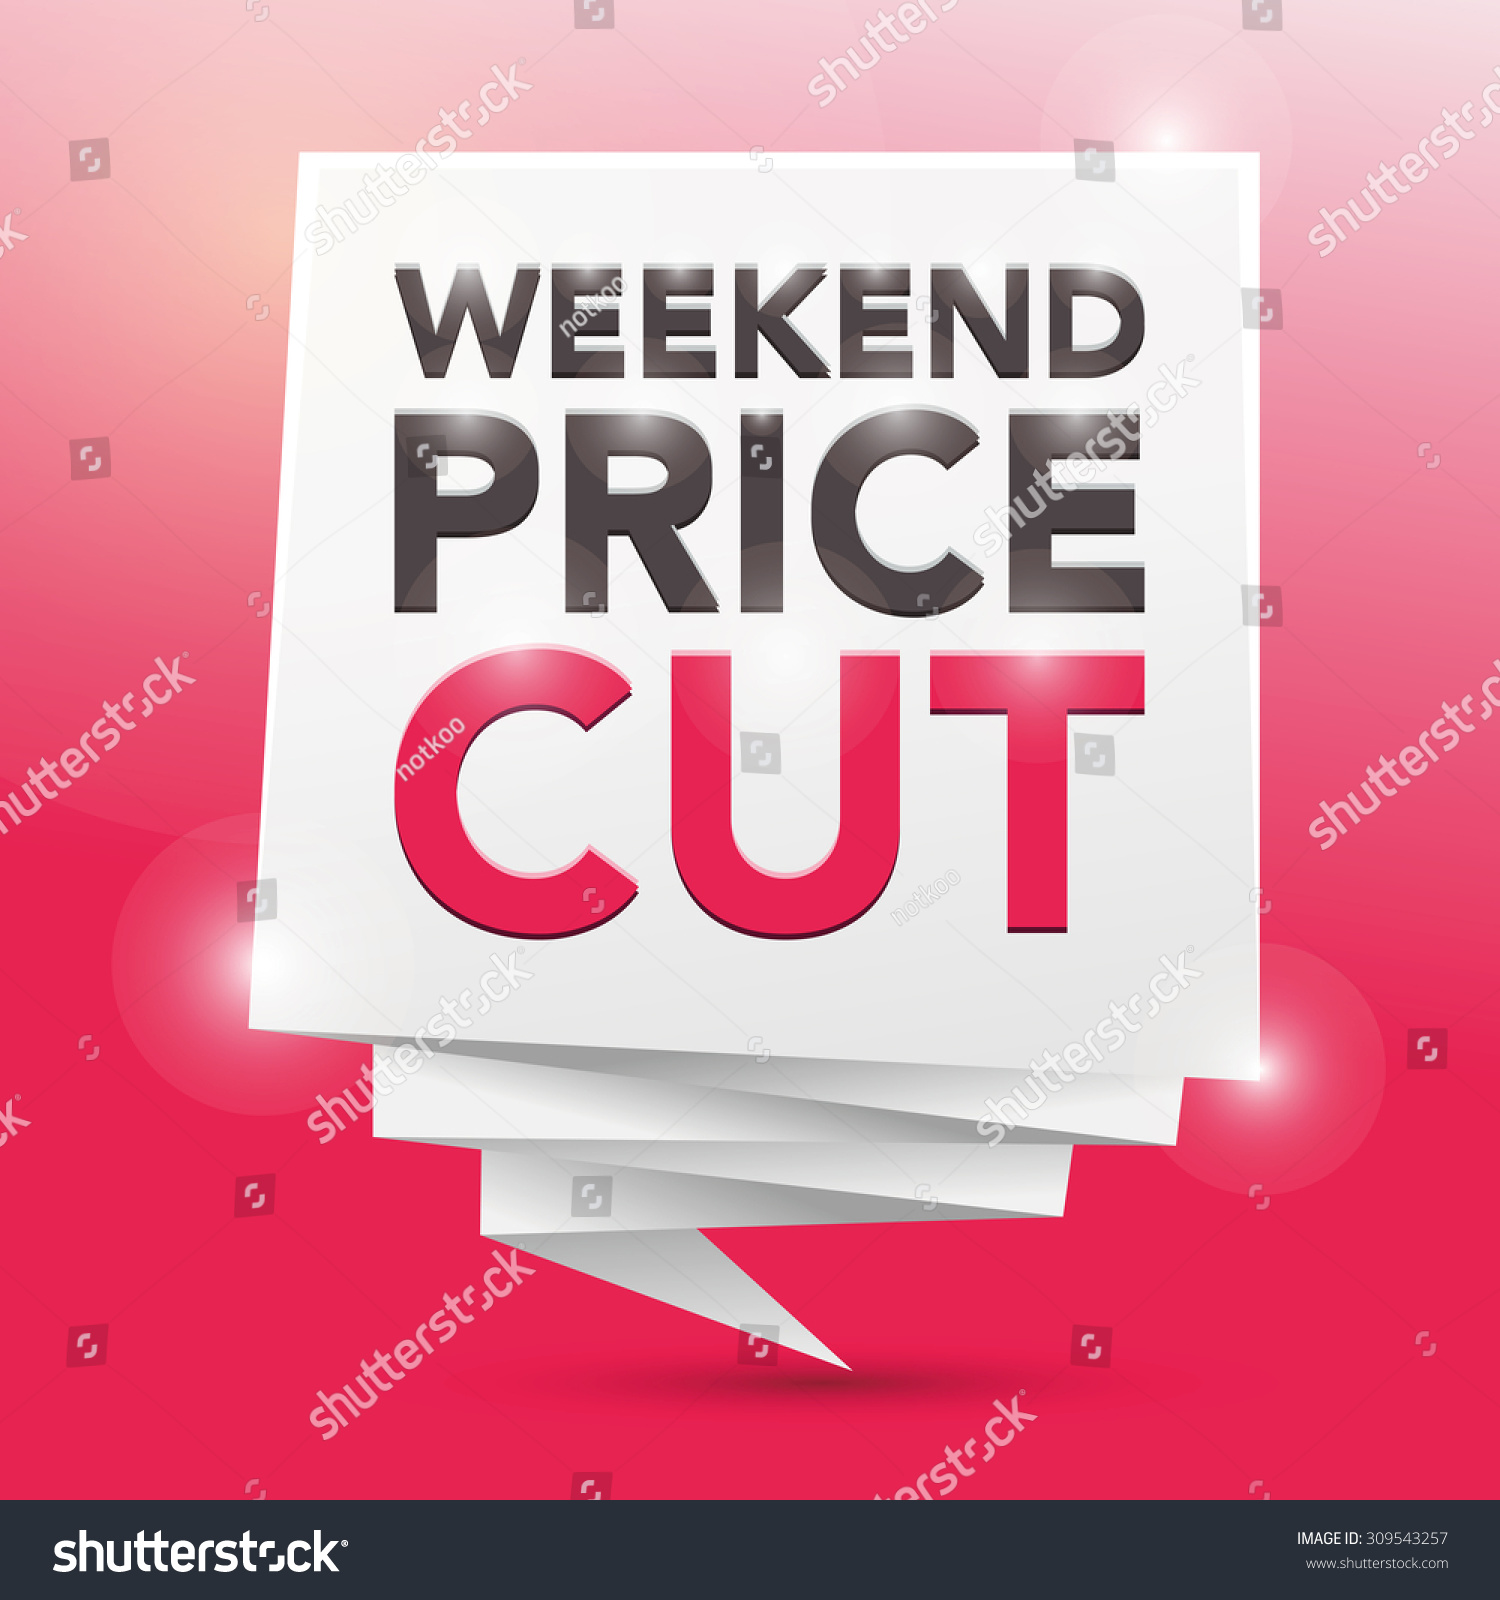 Weekend price cut poster design element preview save to a lightbox